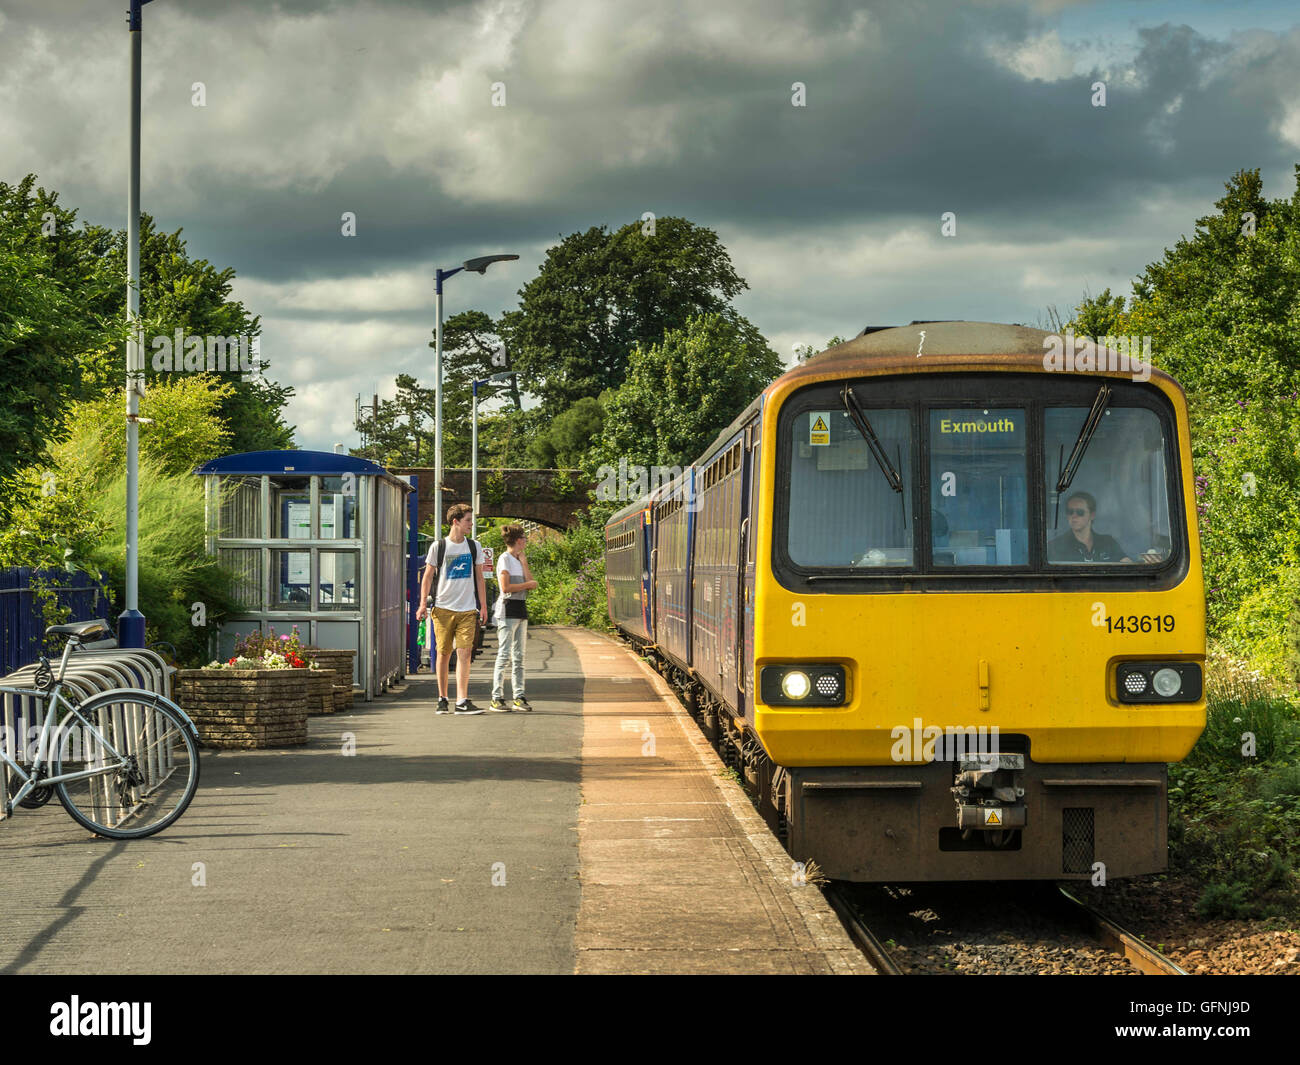 Passengers wait to board the First Great Western Train at Lympstone Station bound for Exmouth along the picturesque Stock Photo